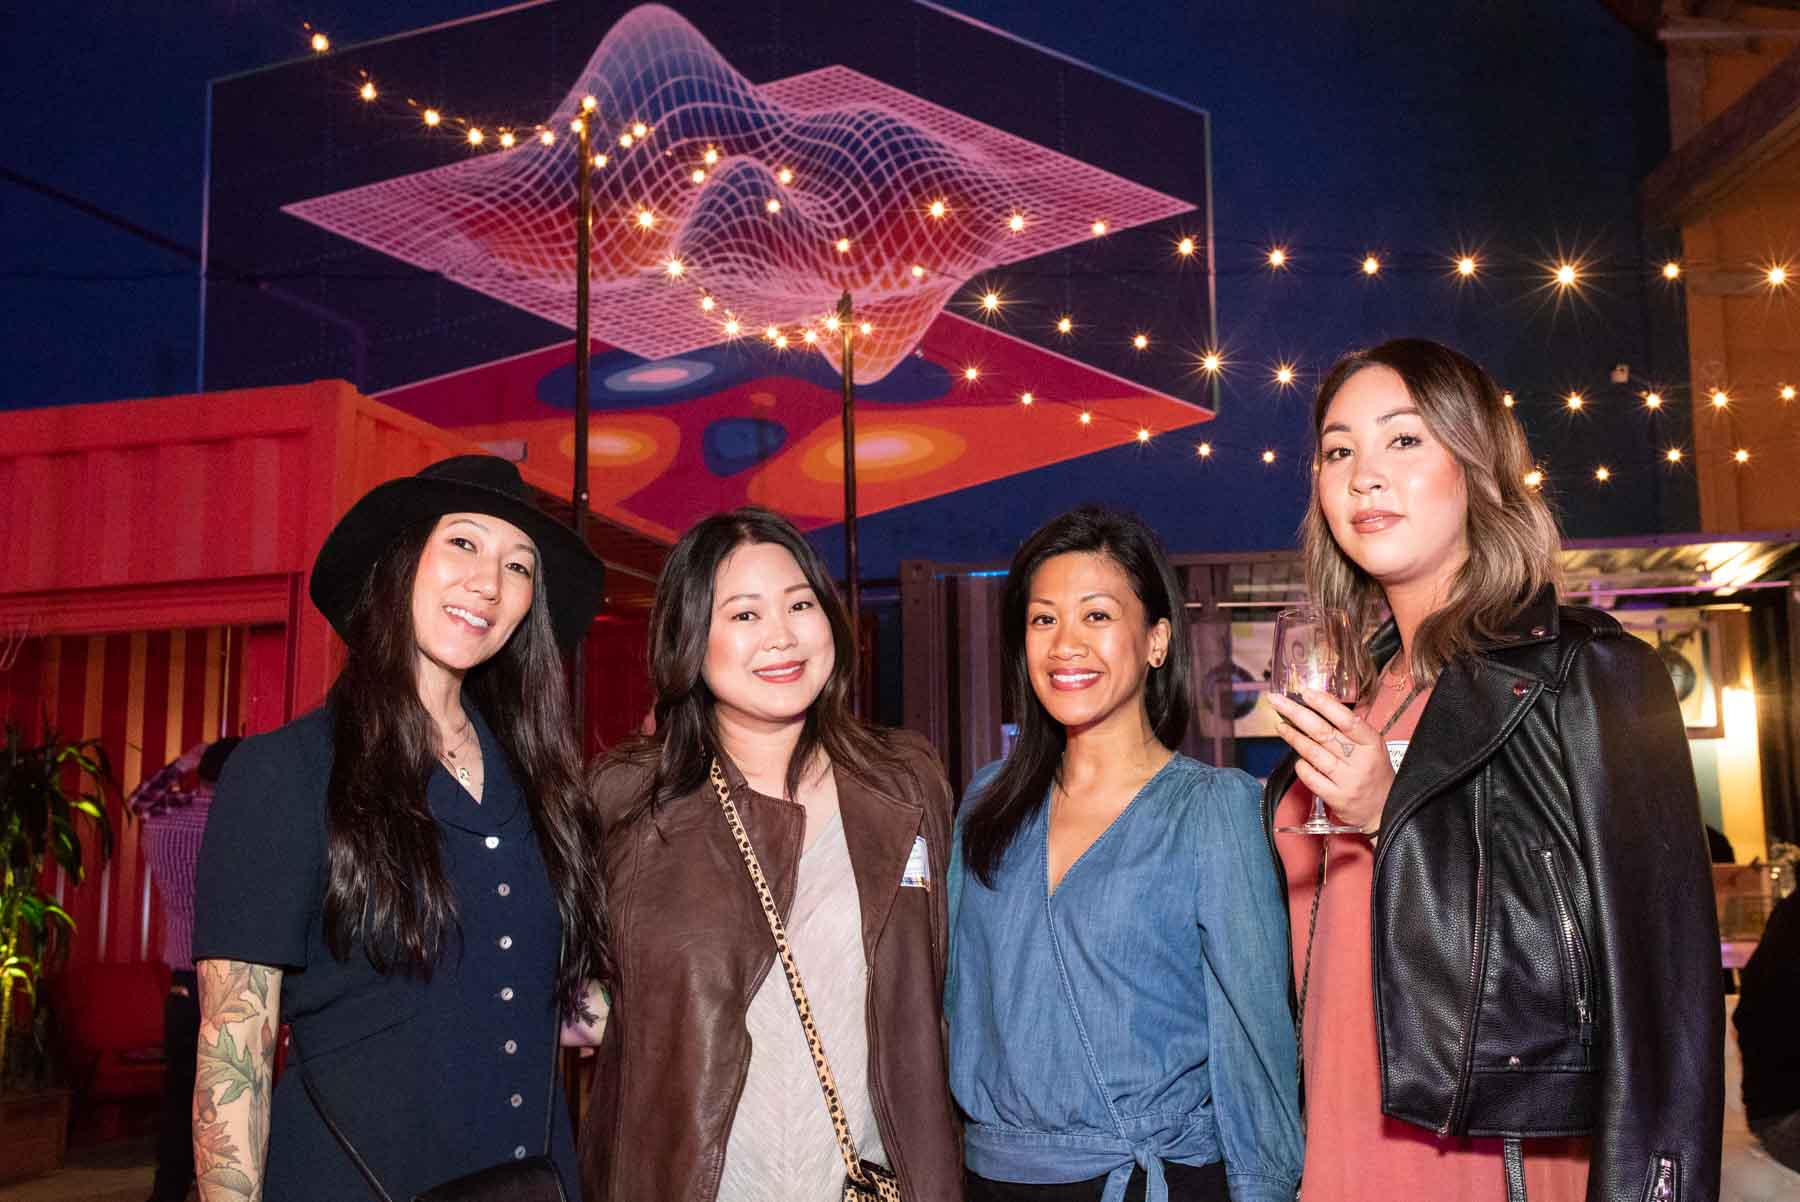 035_colorbloq_sanfrancisco_event_photography.jpg